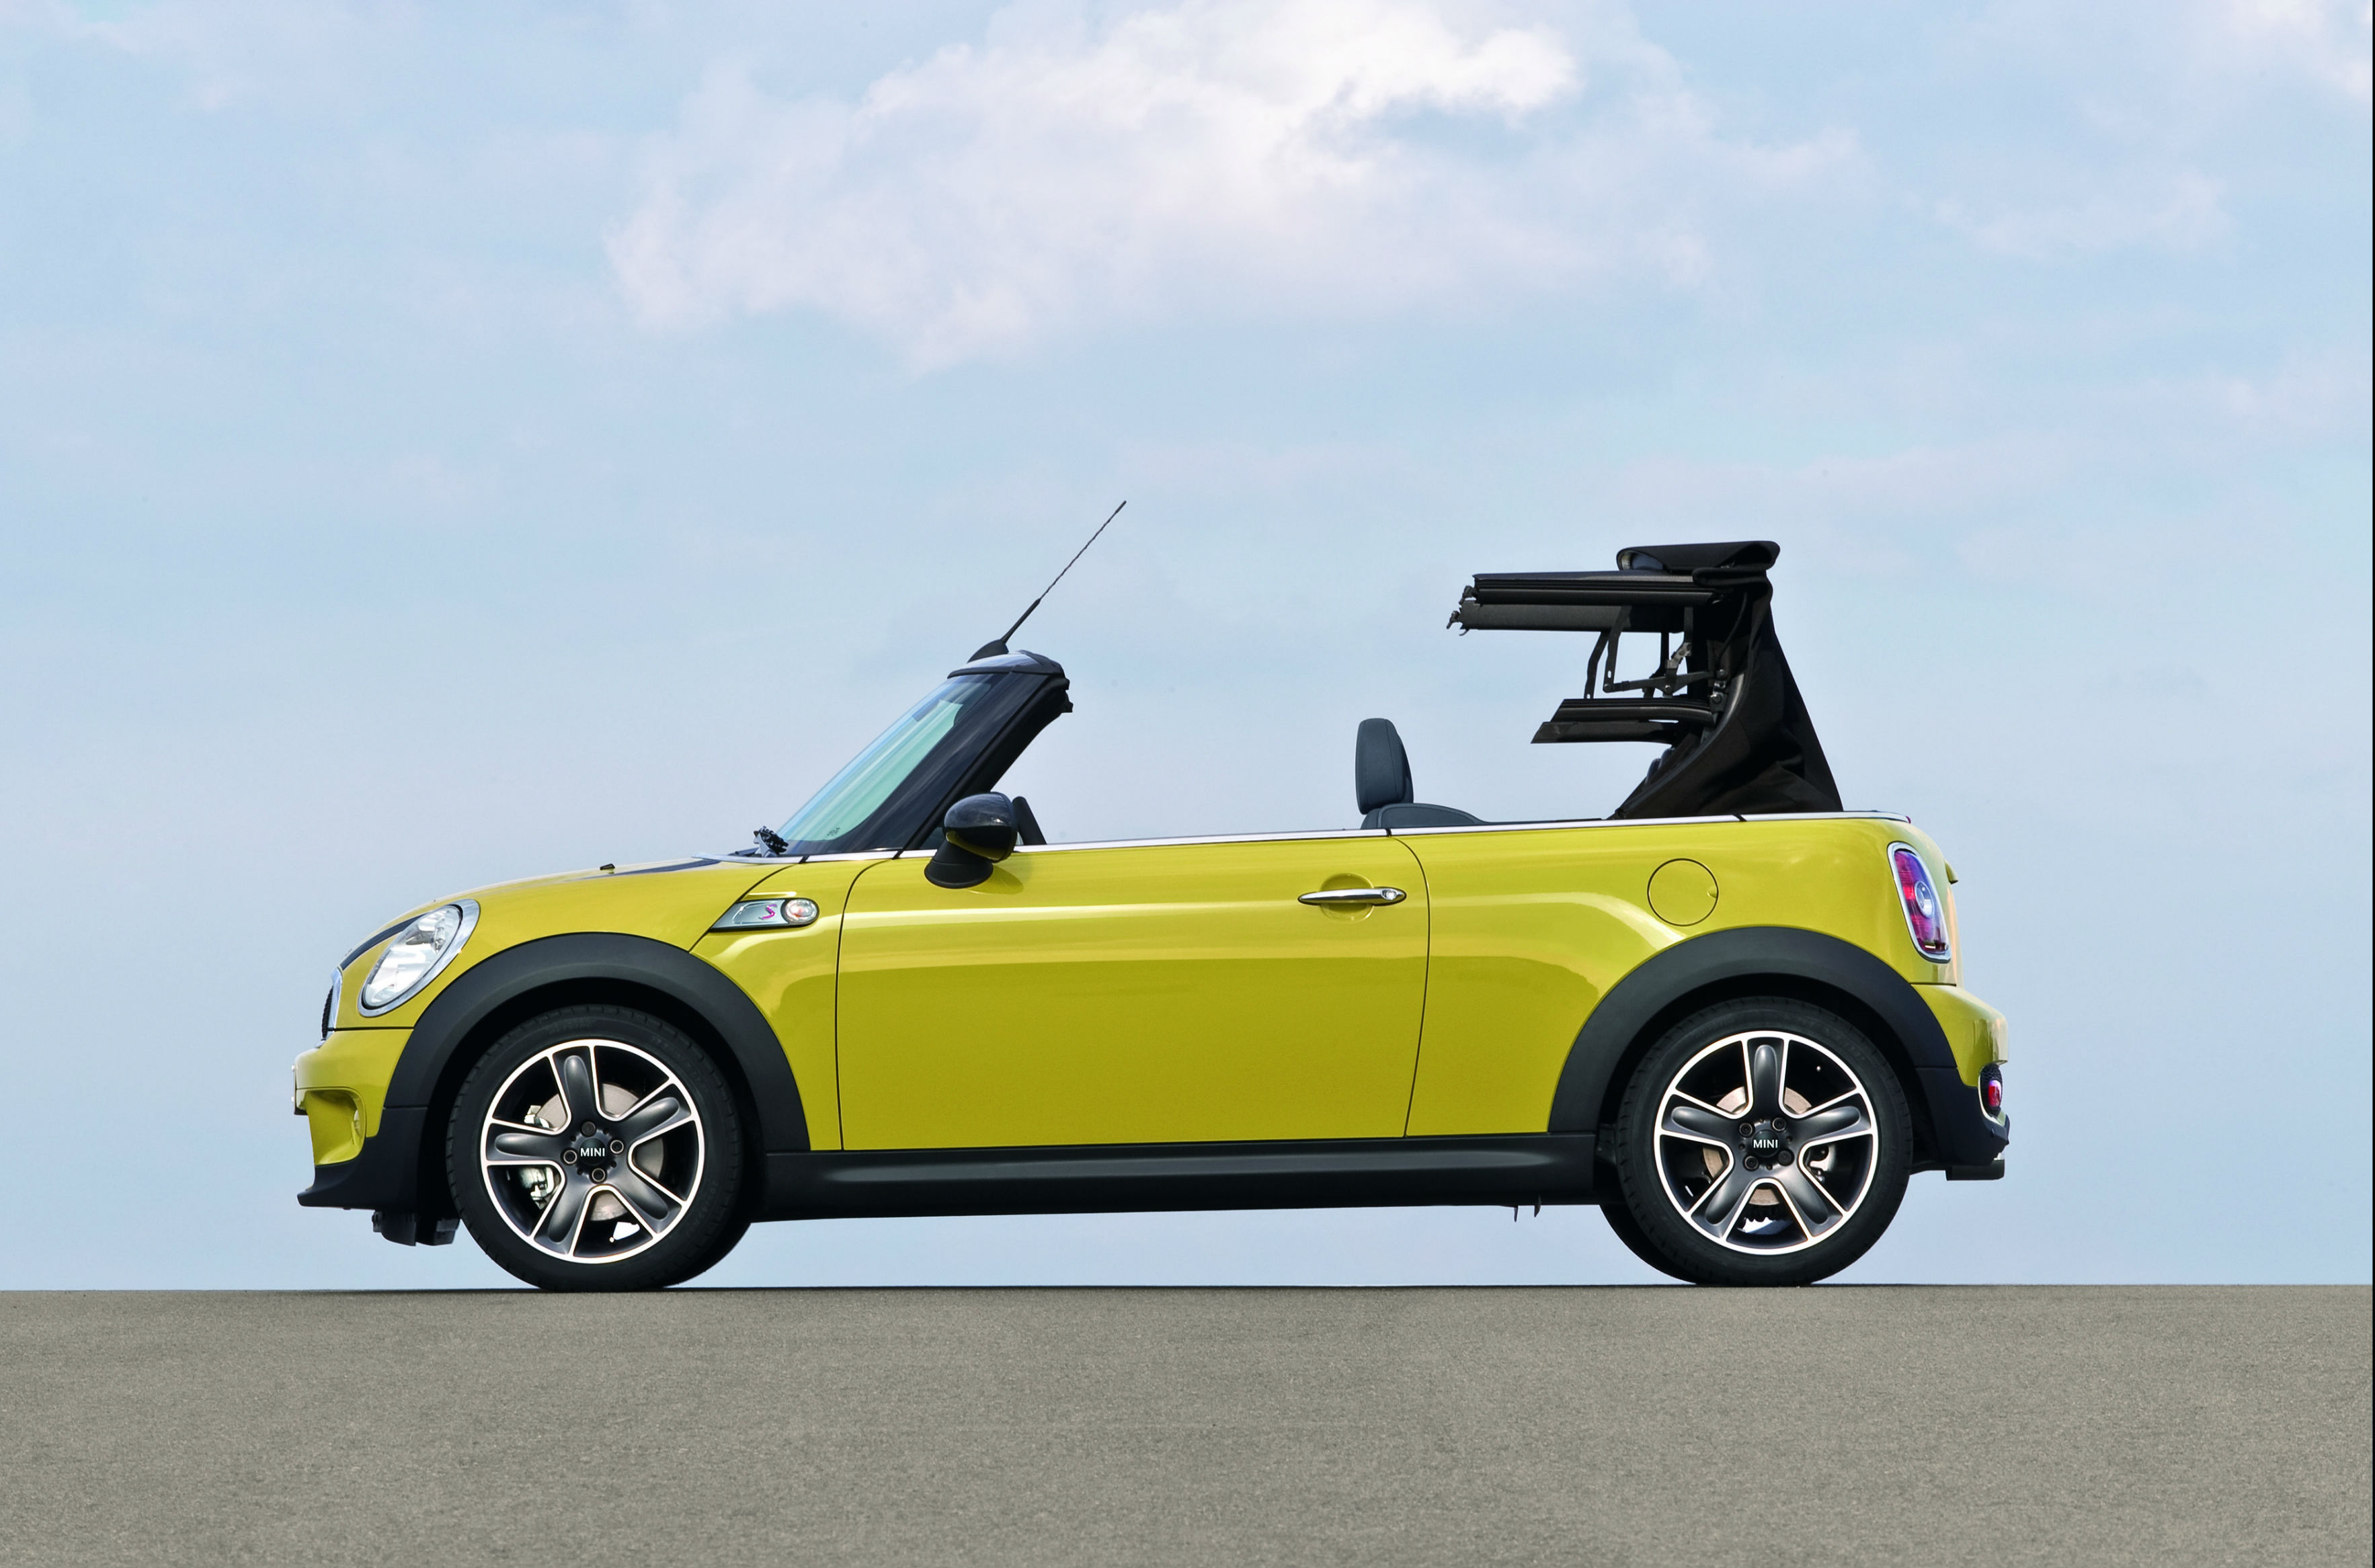 Convertible roof repair: complete guide - Green Flag